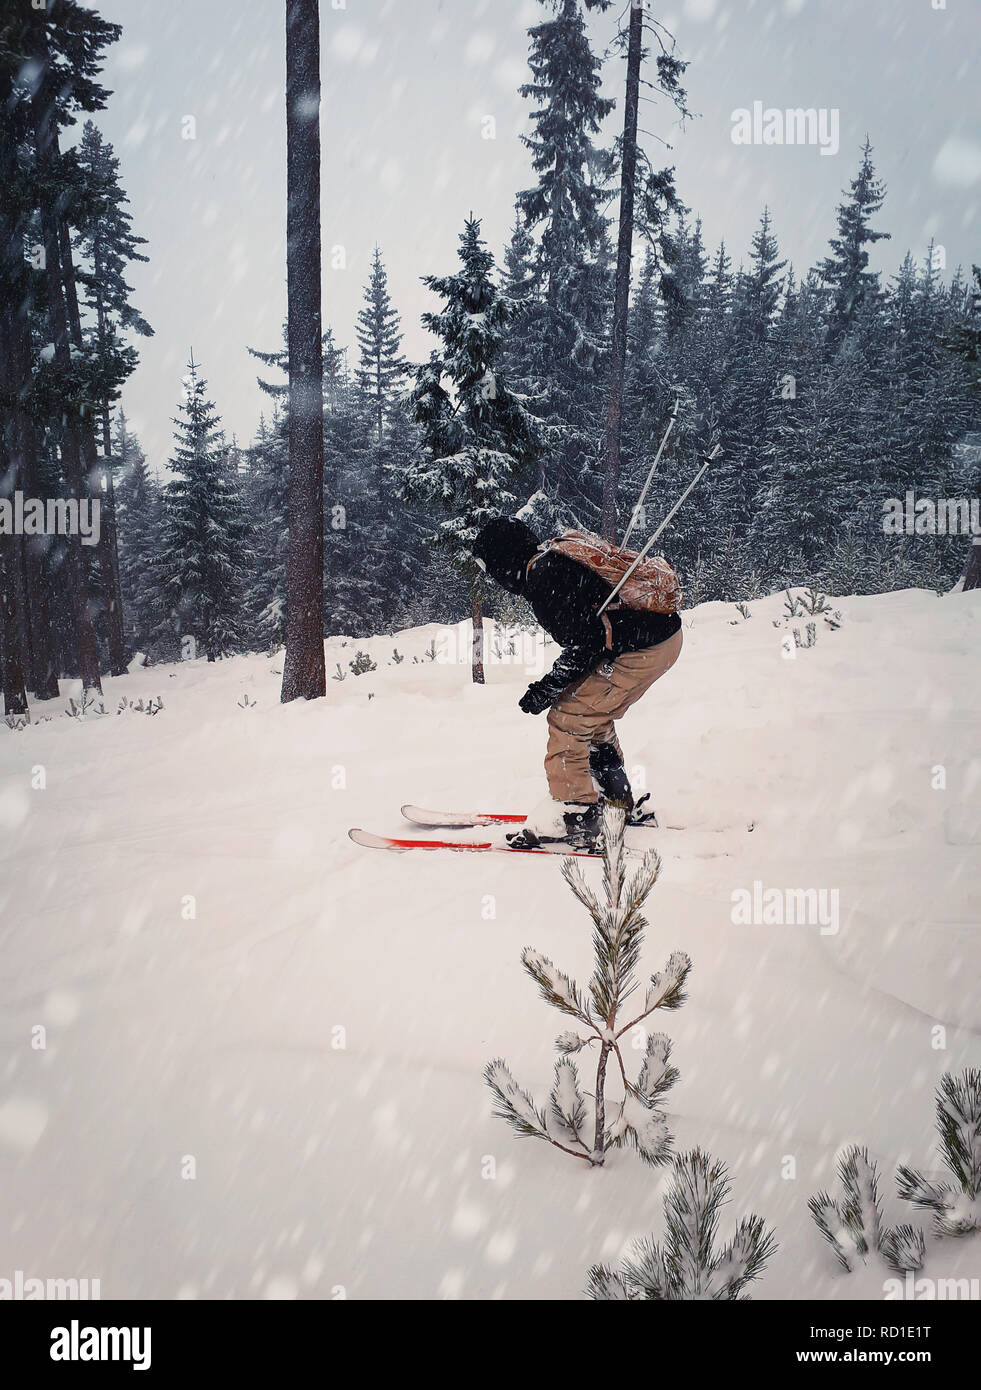 Skier skiing downhill during snowy day in high mountains between fir forest trees. Fast freeride winter sport. - Stock Image